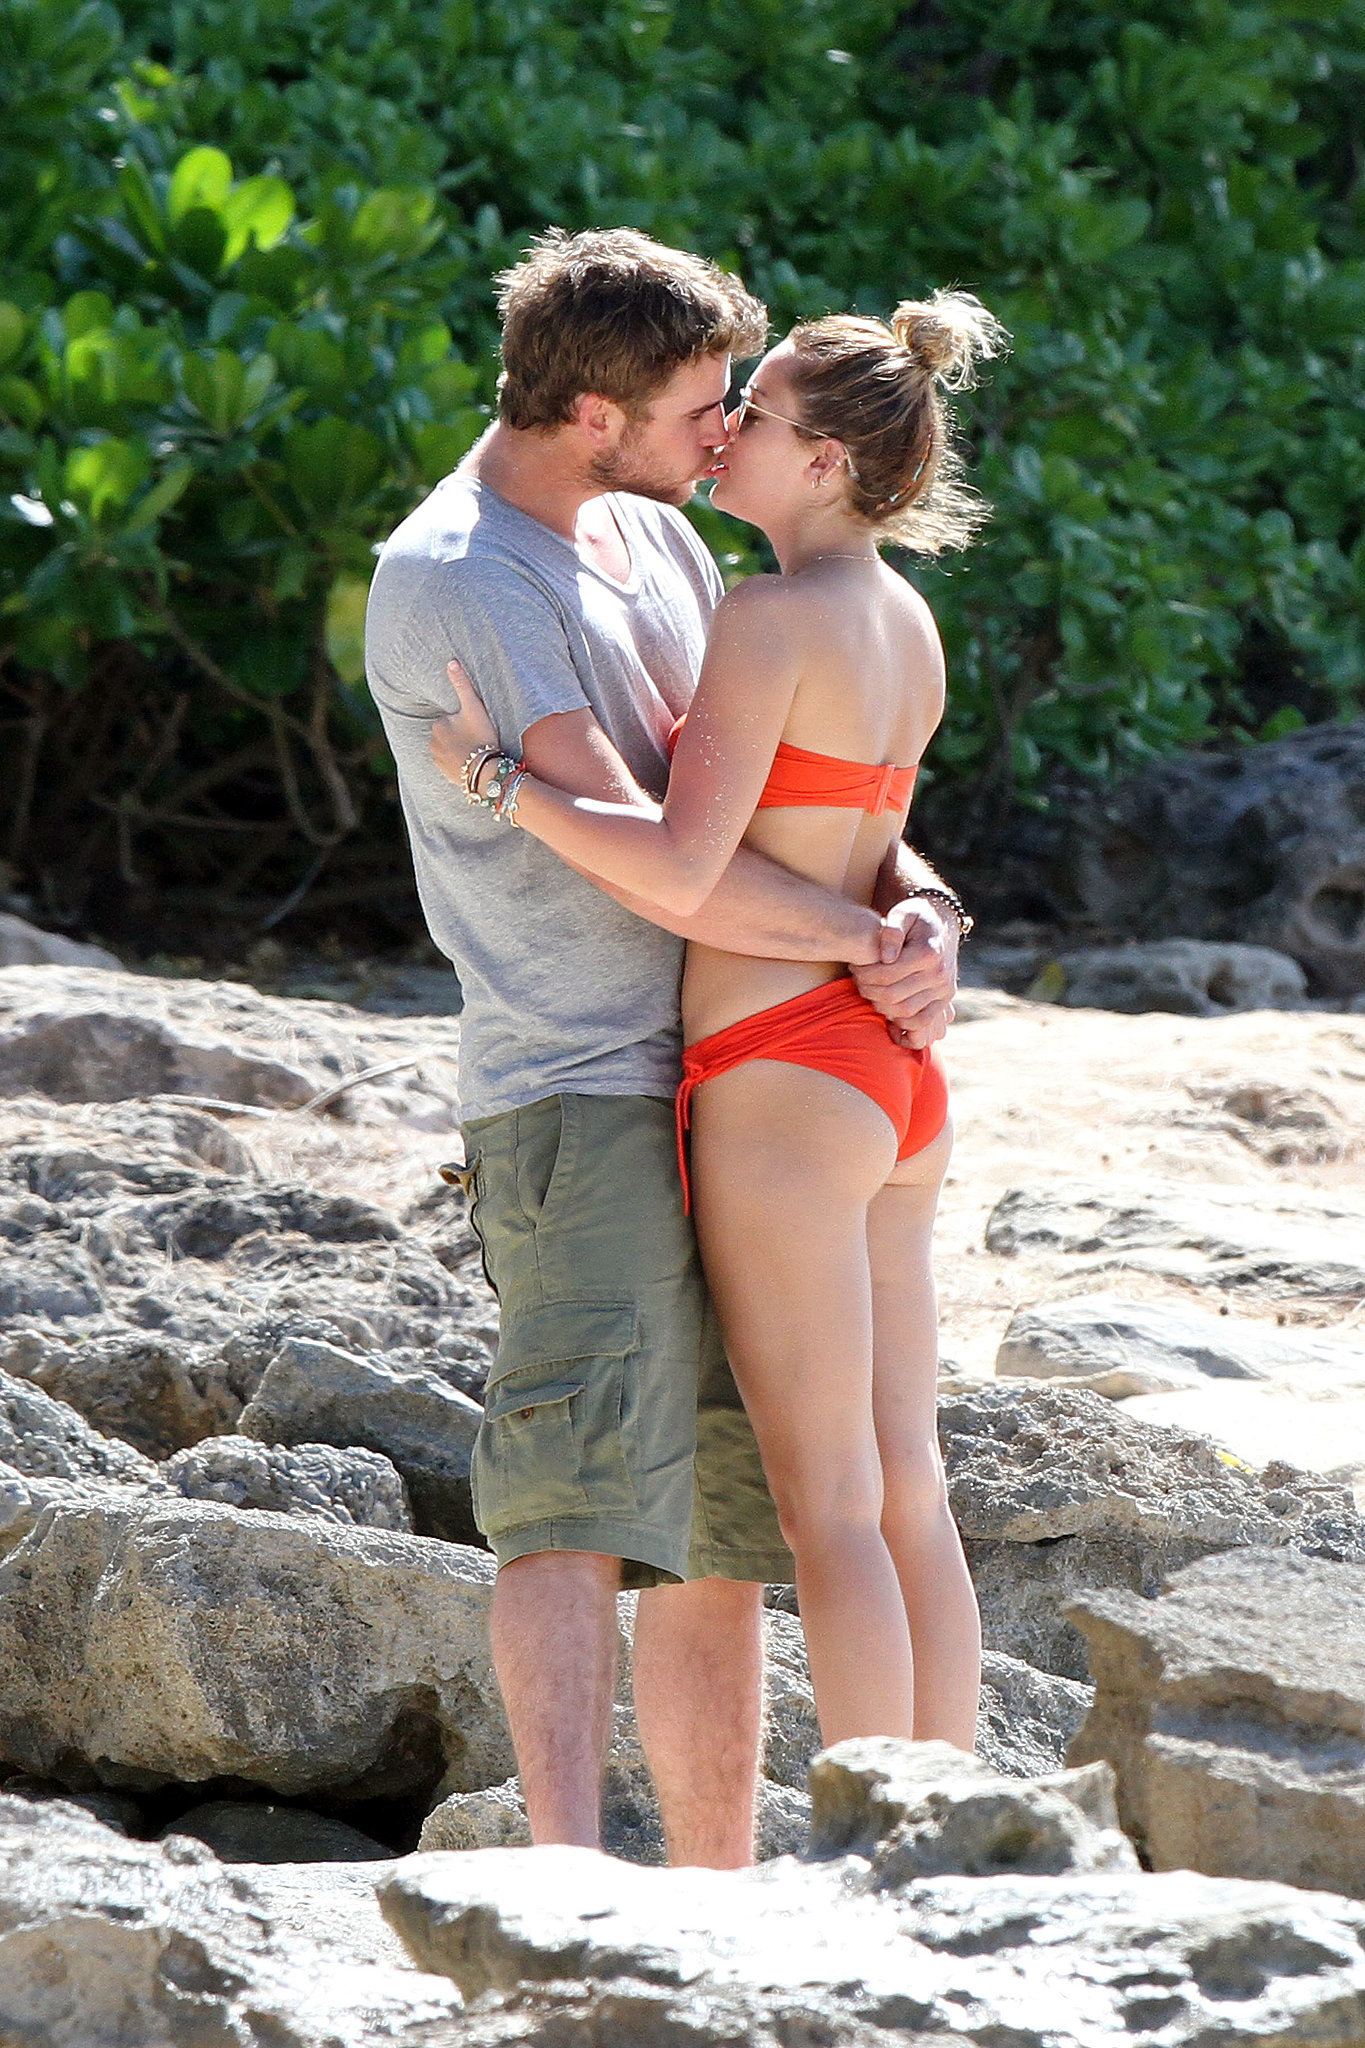 Miley Cyrus and Liam Hemsworth kissed on the beach in Hawaii in December 2011.